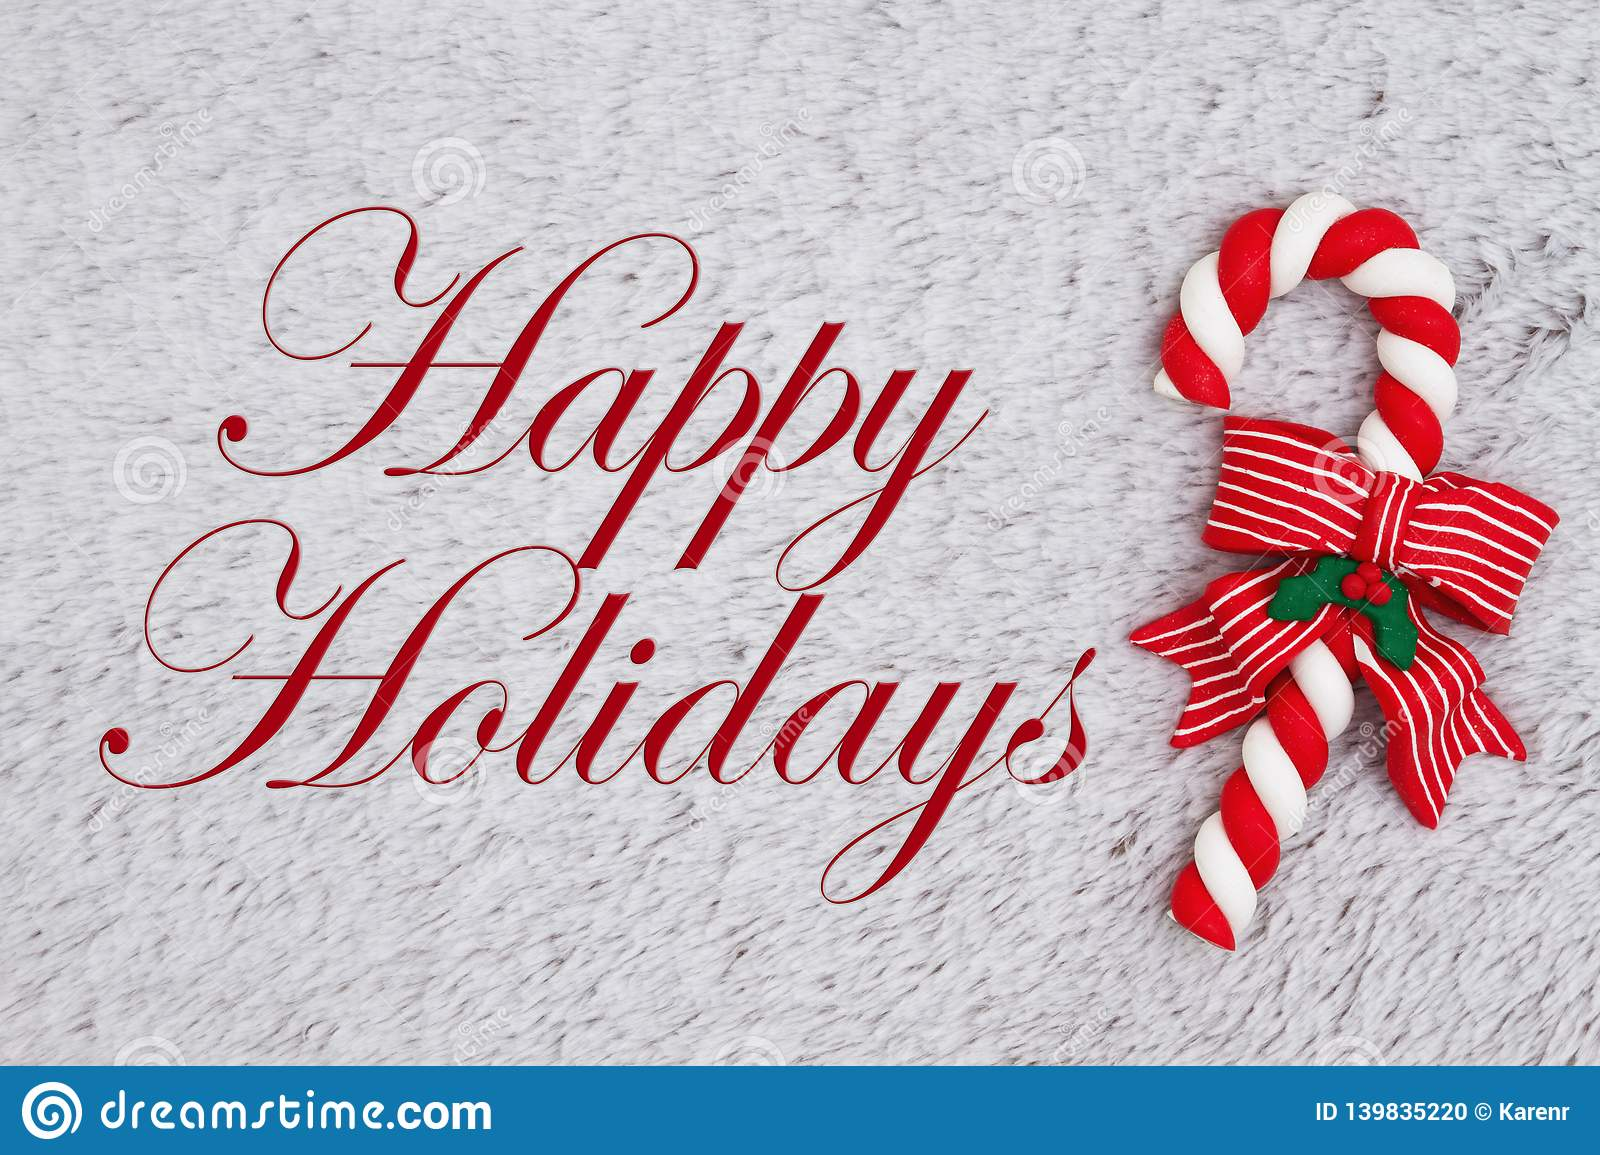 Candy cane on plush gray material with text Happy Holidays